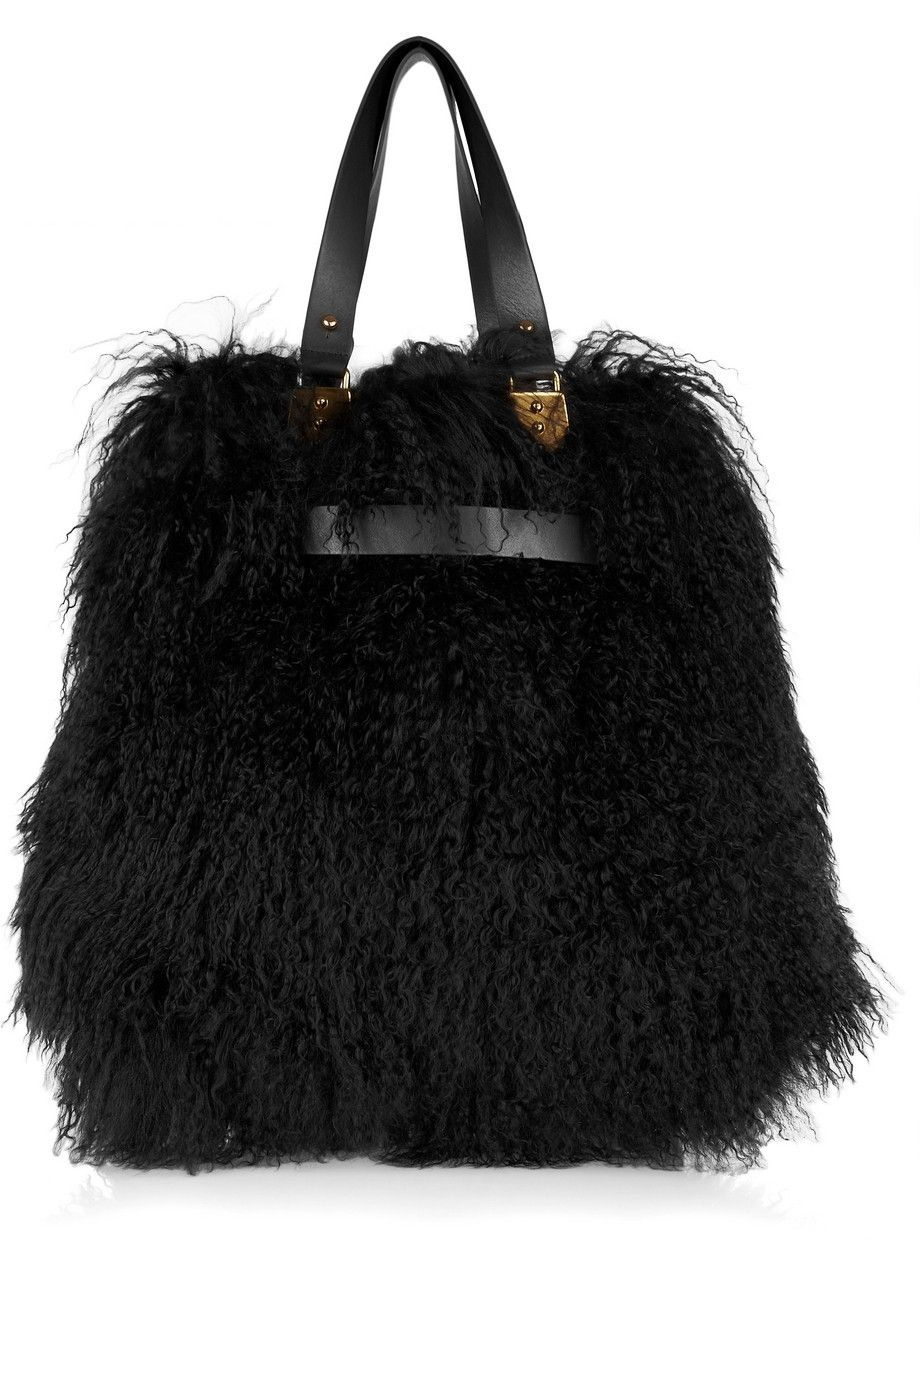 Christian Louboutin - Sybil reversible shearling and leather tote